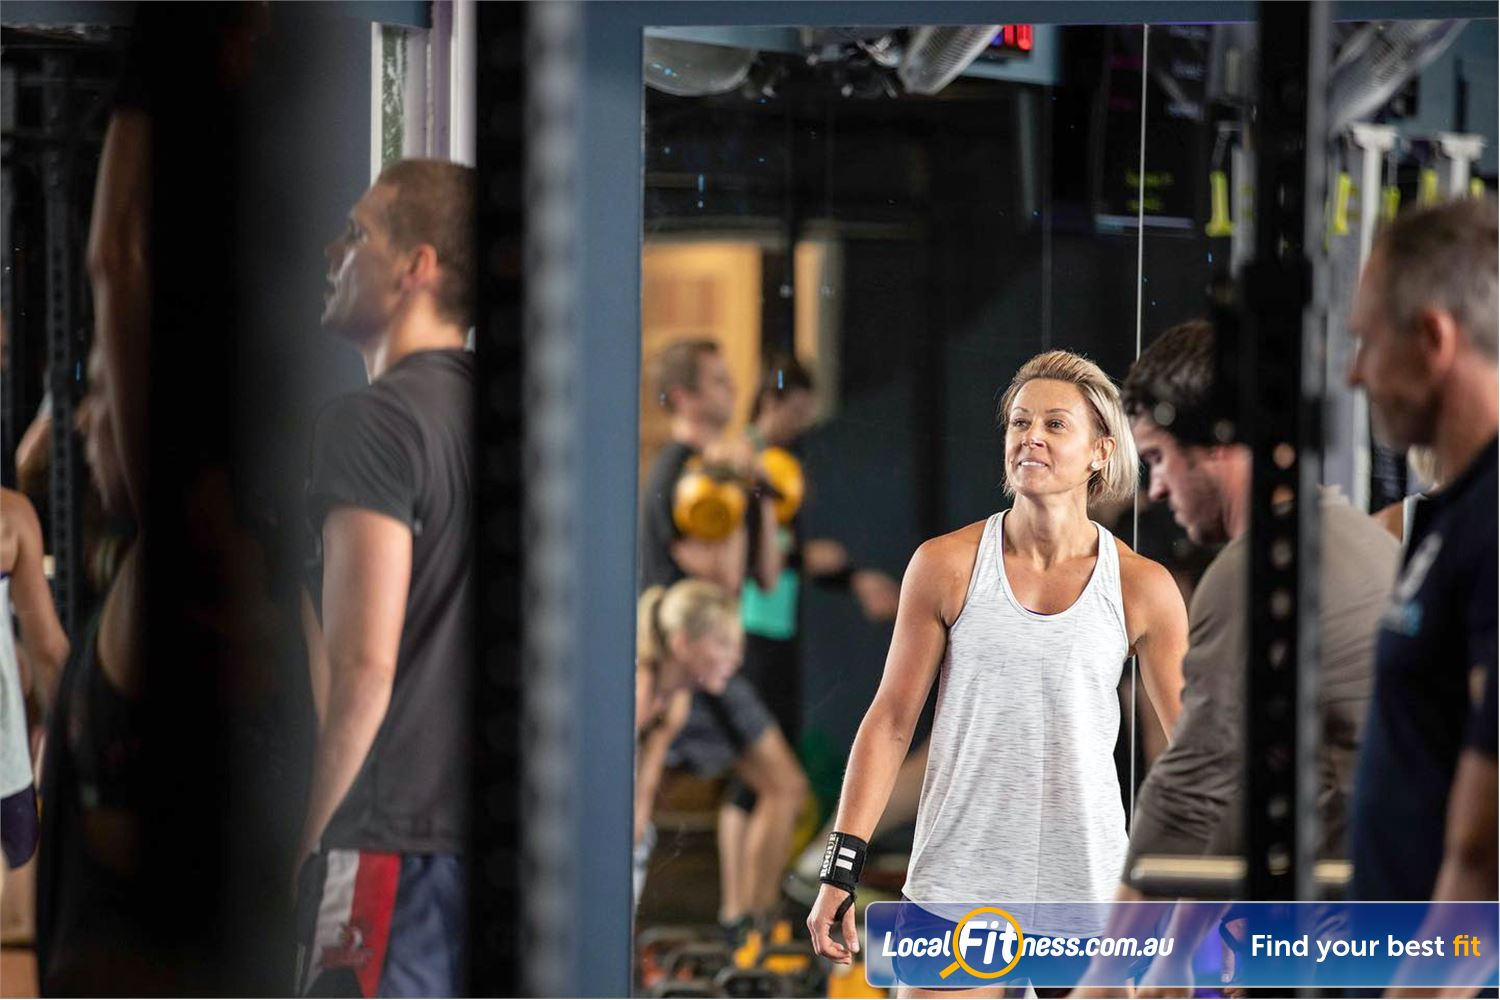 KettleFit Windsor Join a community on a journey to lose weight, build muscle or becoming extremely fit.